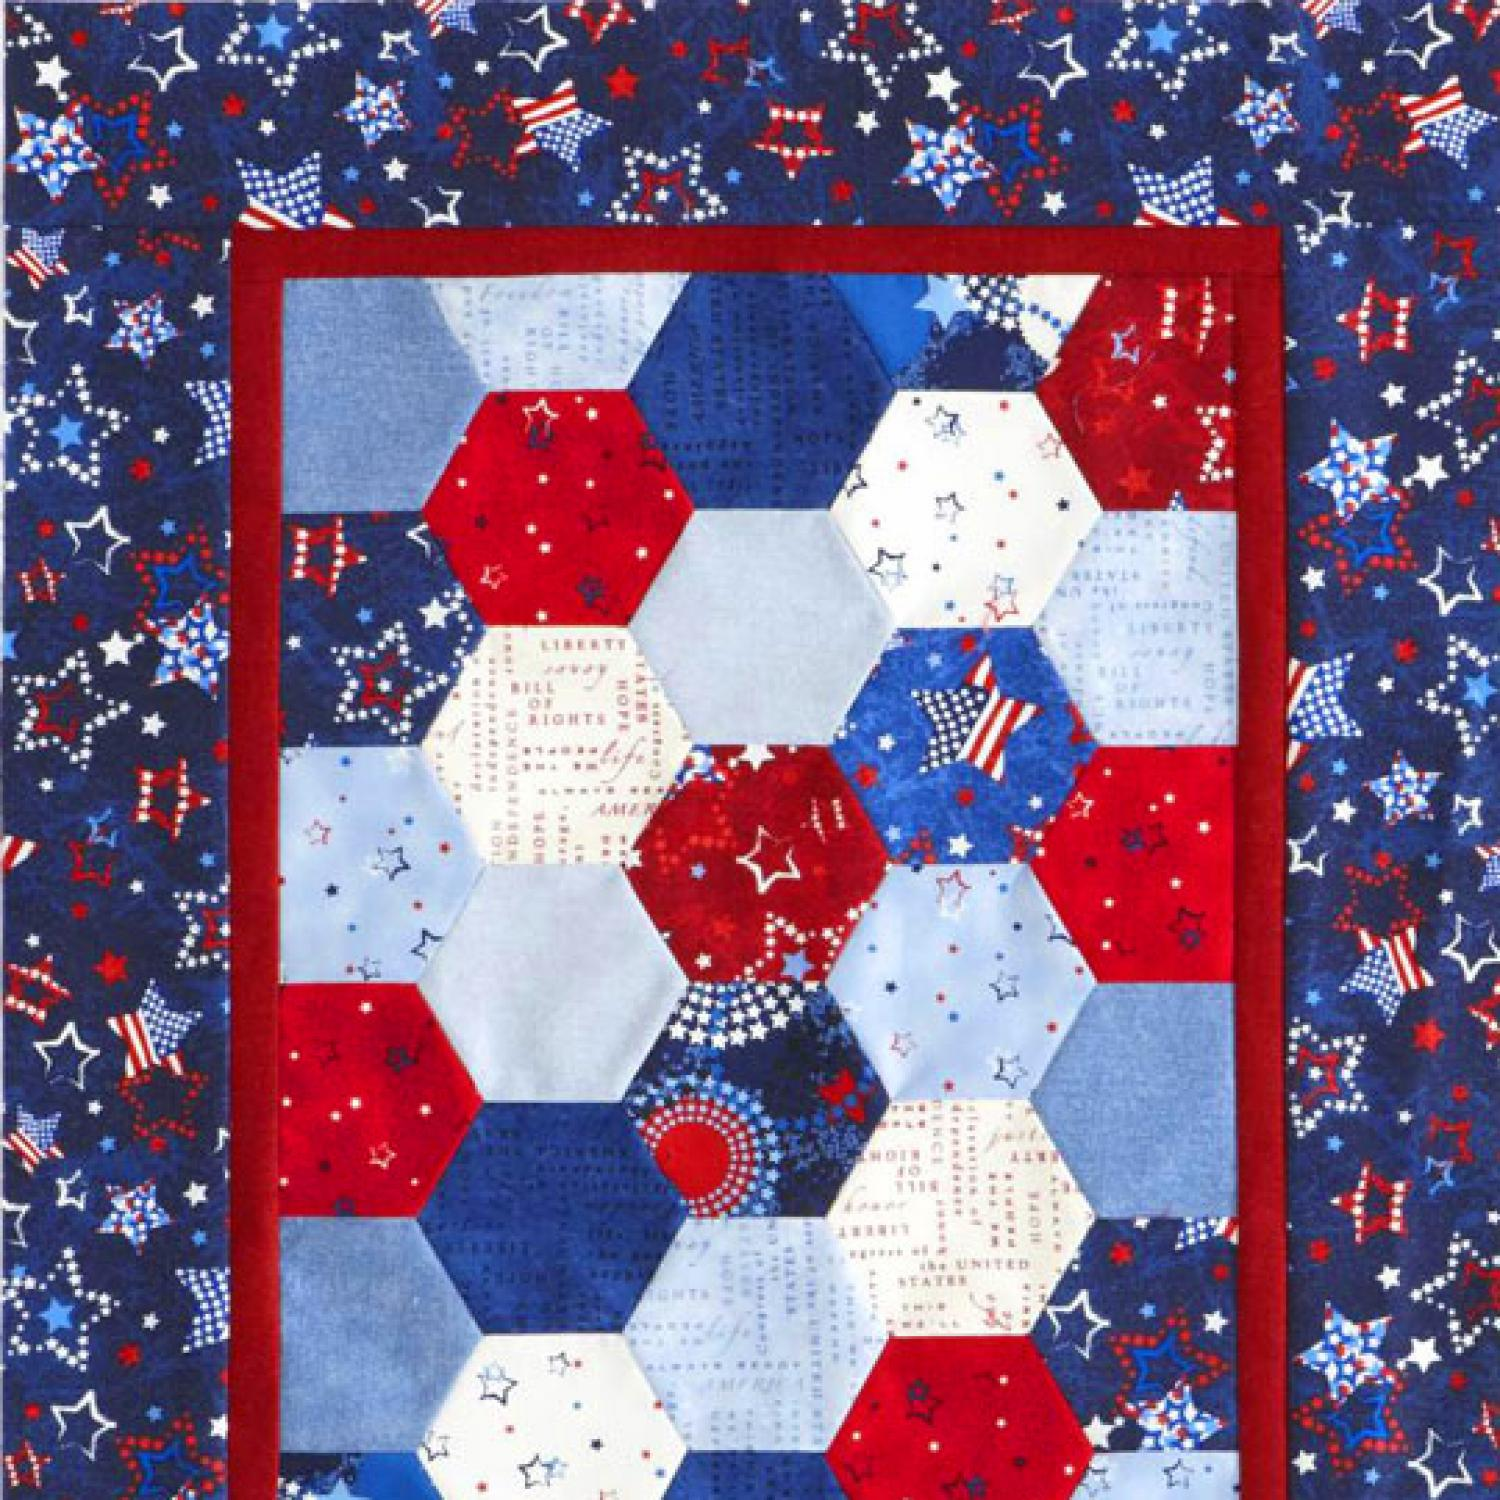 Groovy Patriotic Hexagons Table Runner Allpeoplequilt Com Home Interior And Landscaping Eliaenasavecom